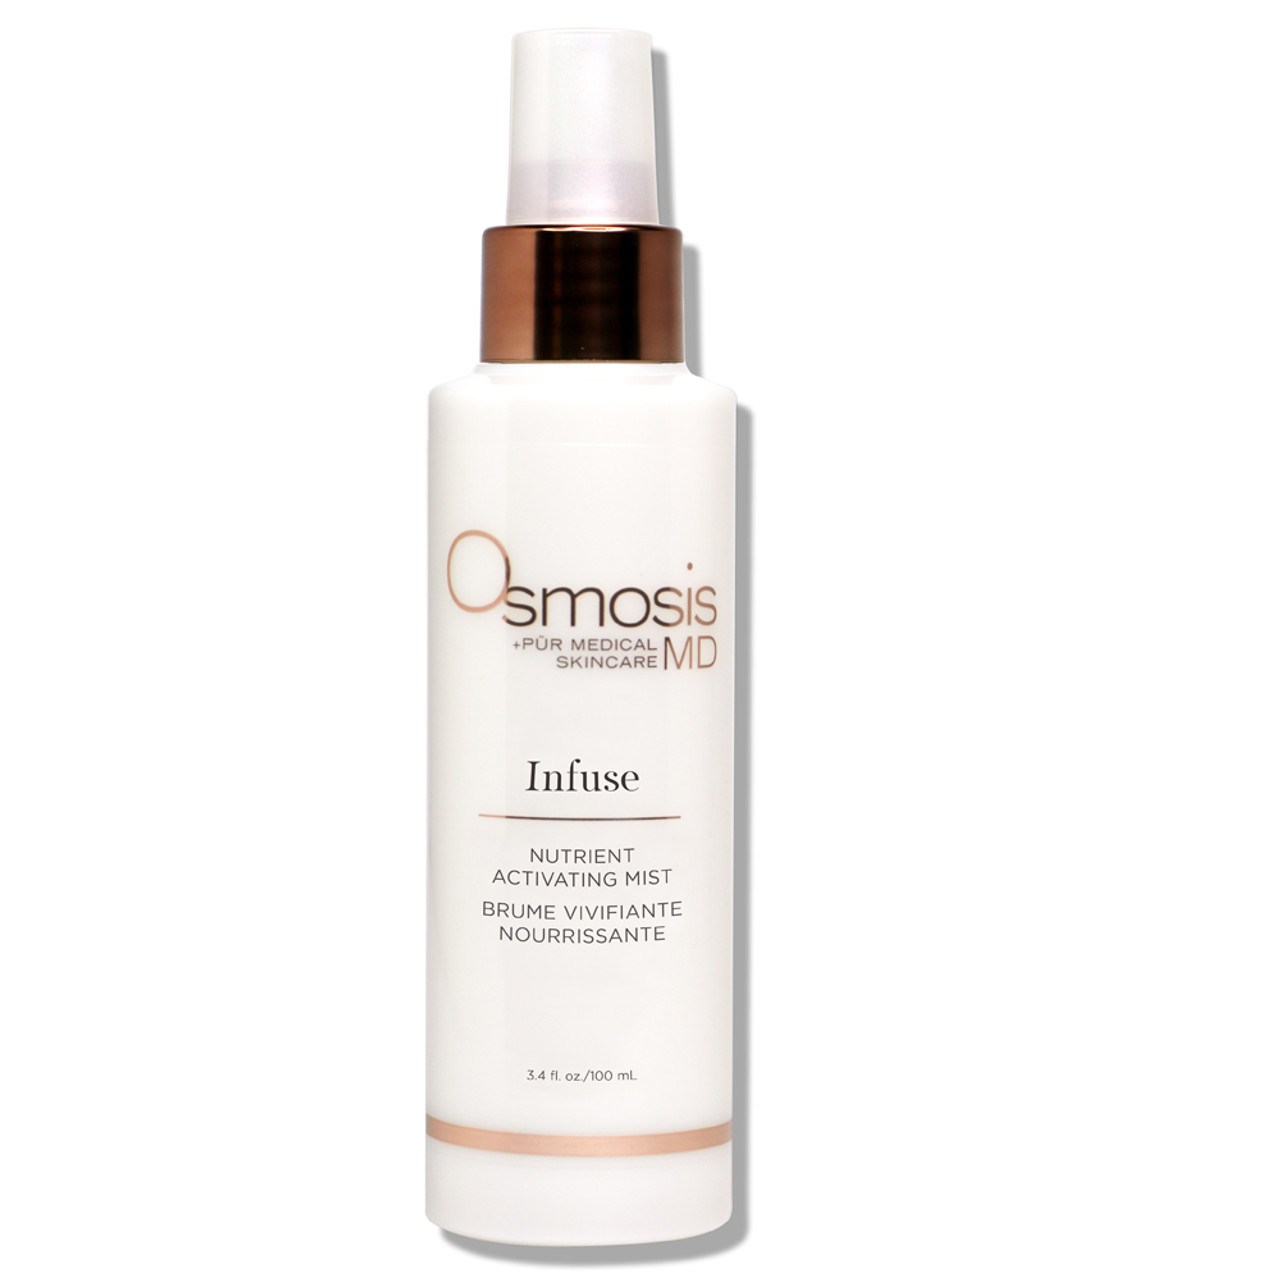 Osmosis +Skincare MD Infuse - Nutrient Activating Mist BeautifiedYou.com